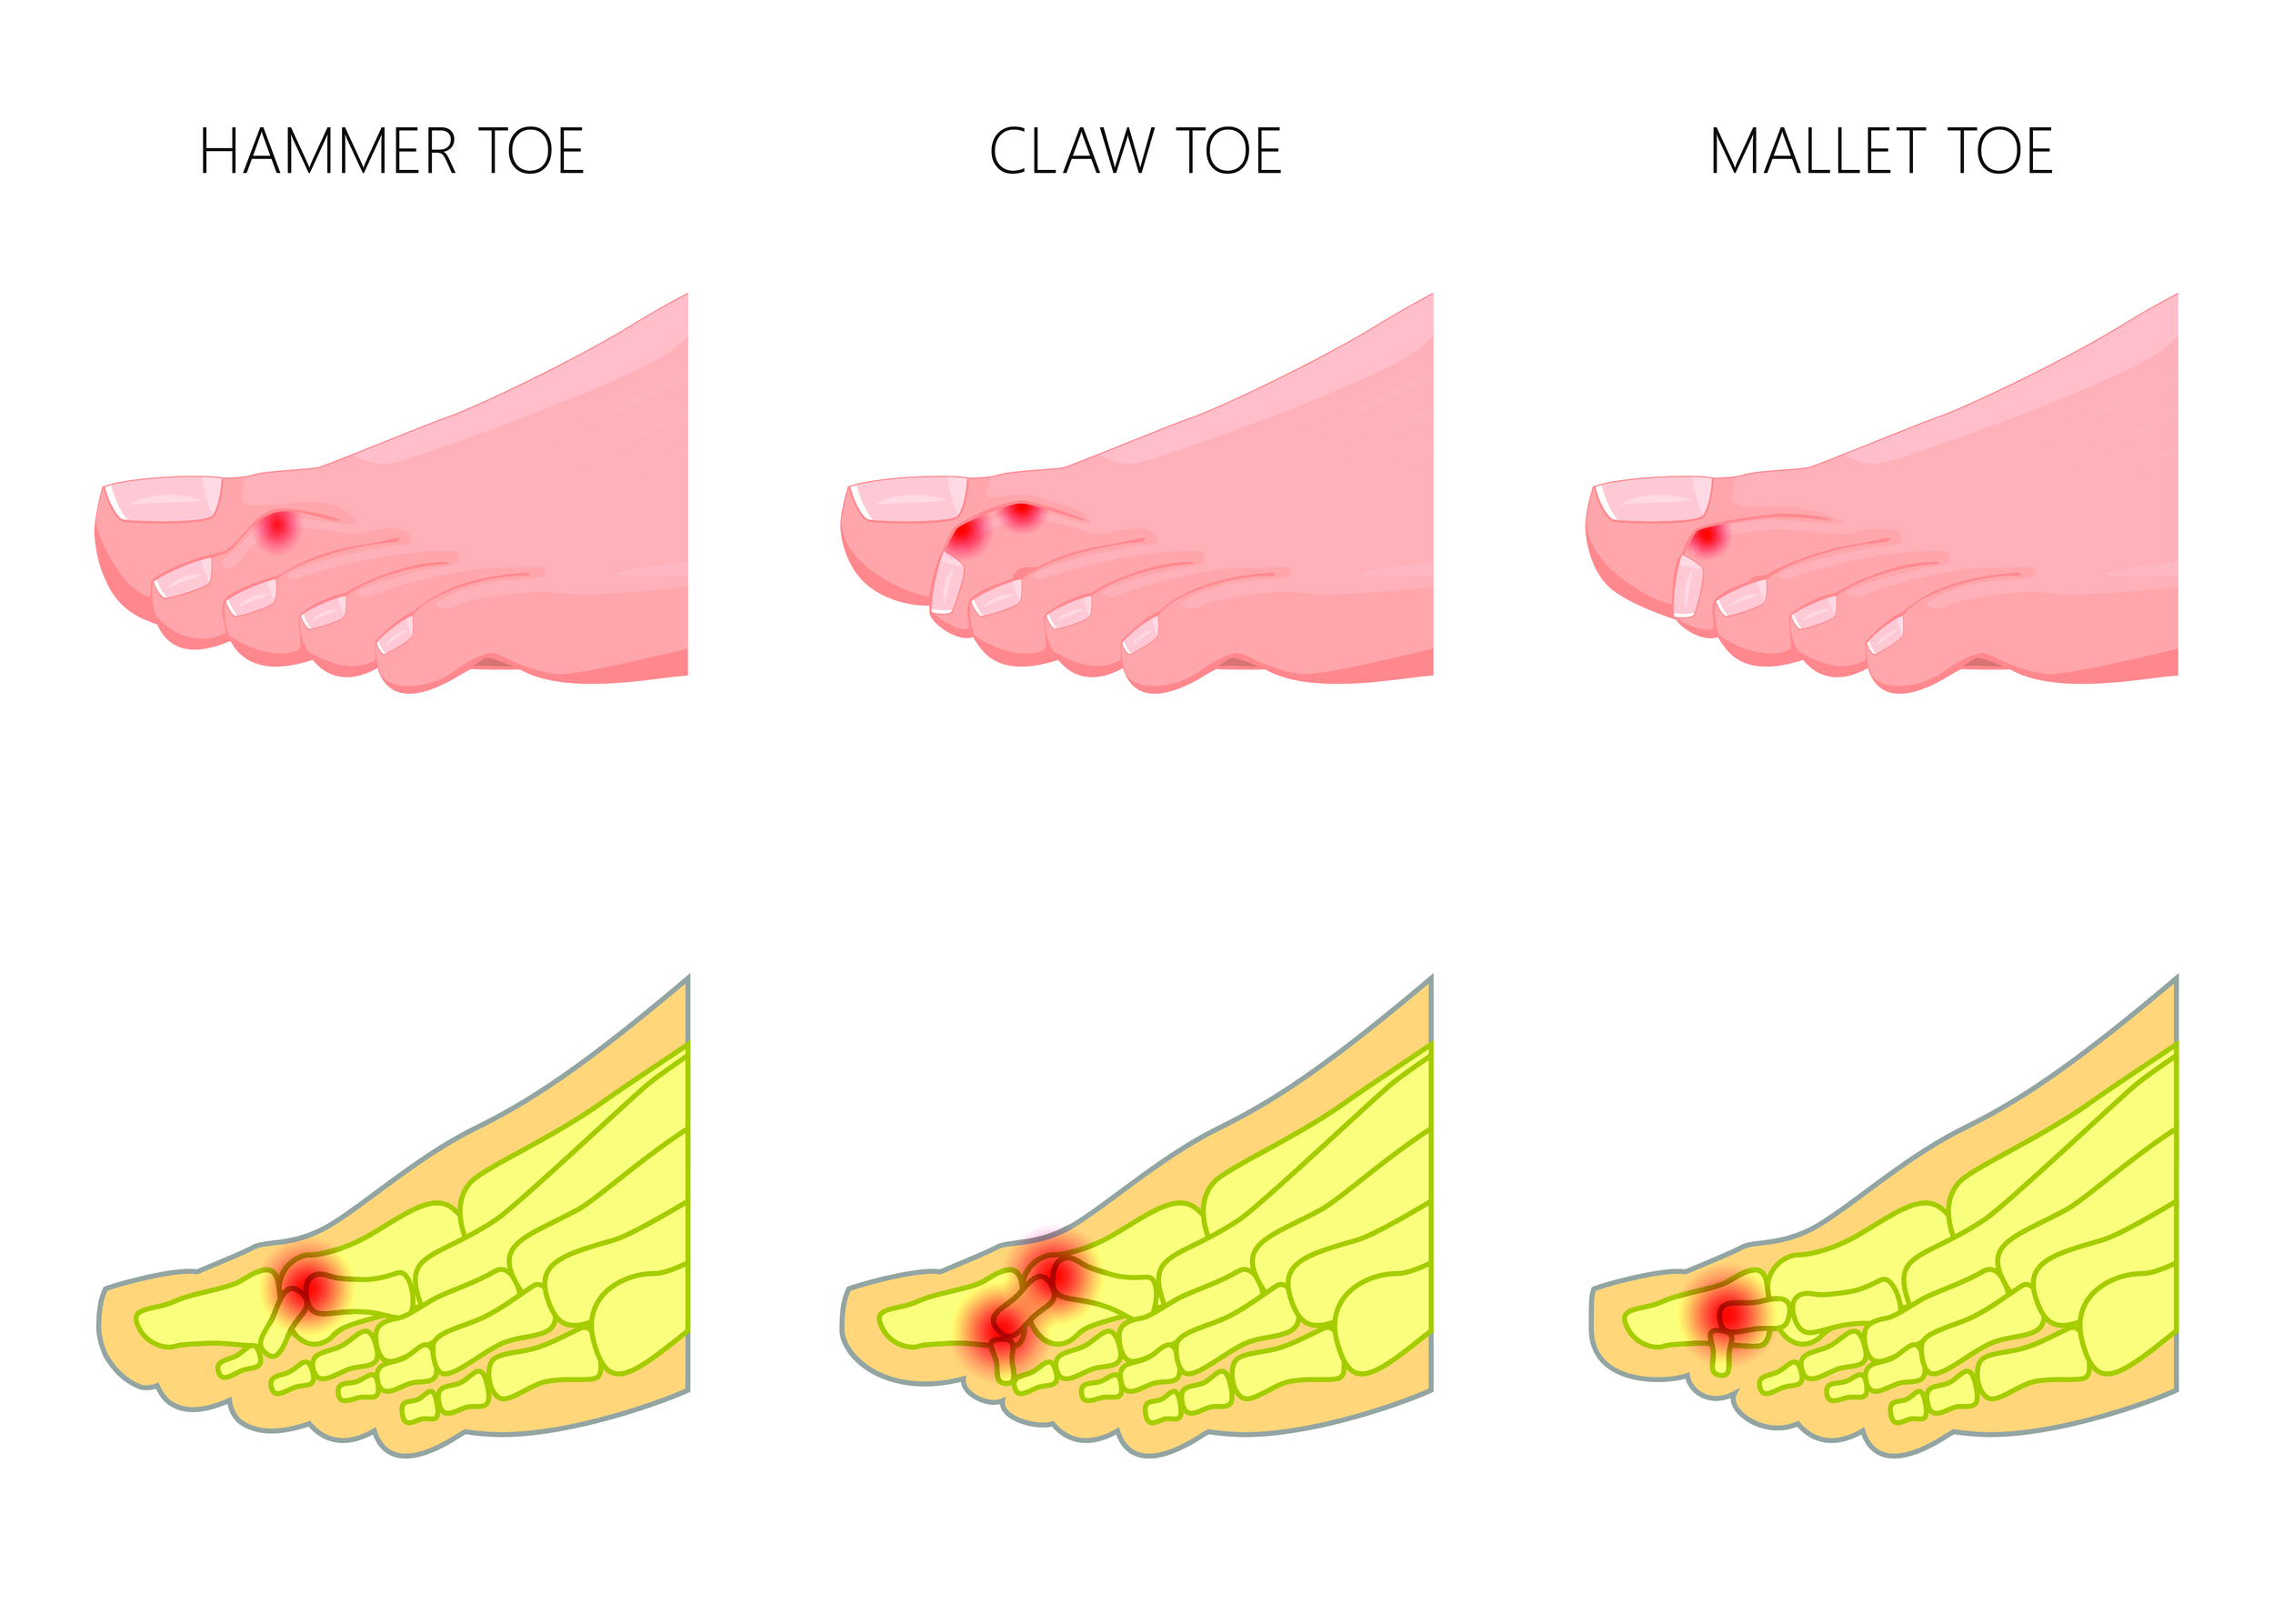 hammertoe doctor treats painful hammertoe in cherry hill, nj and ridley park, pa